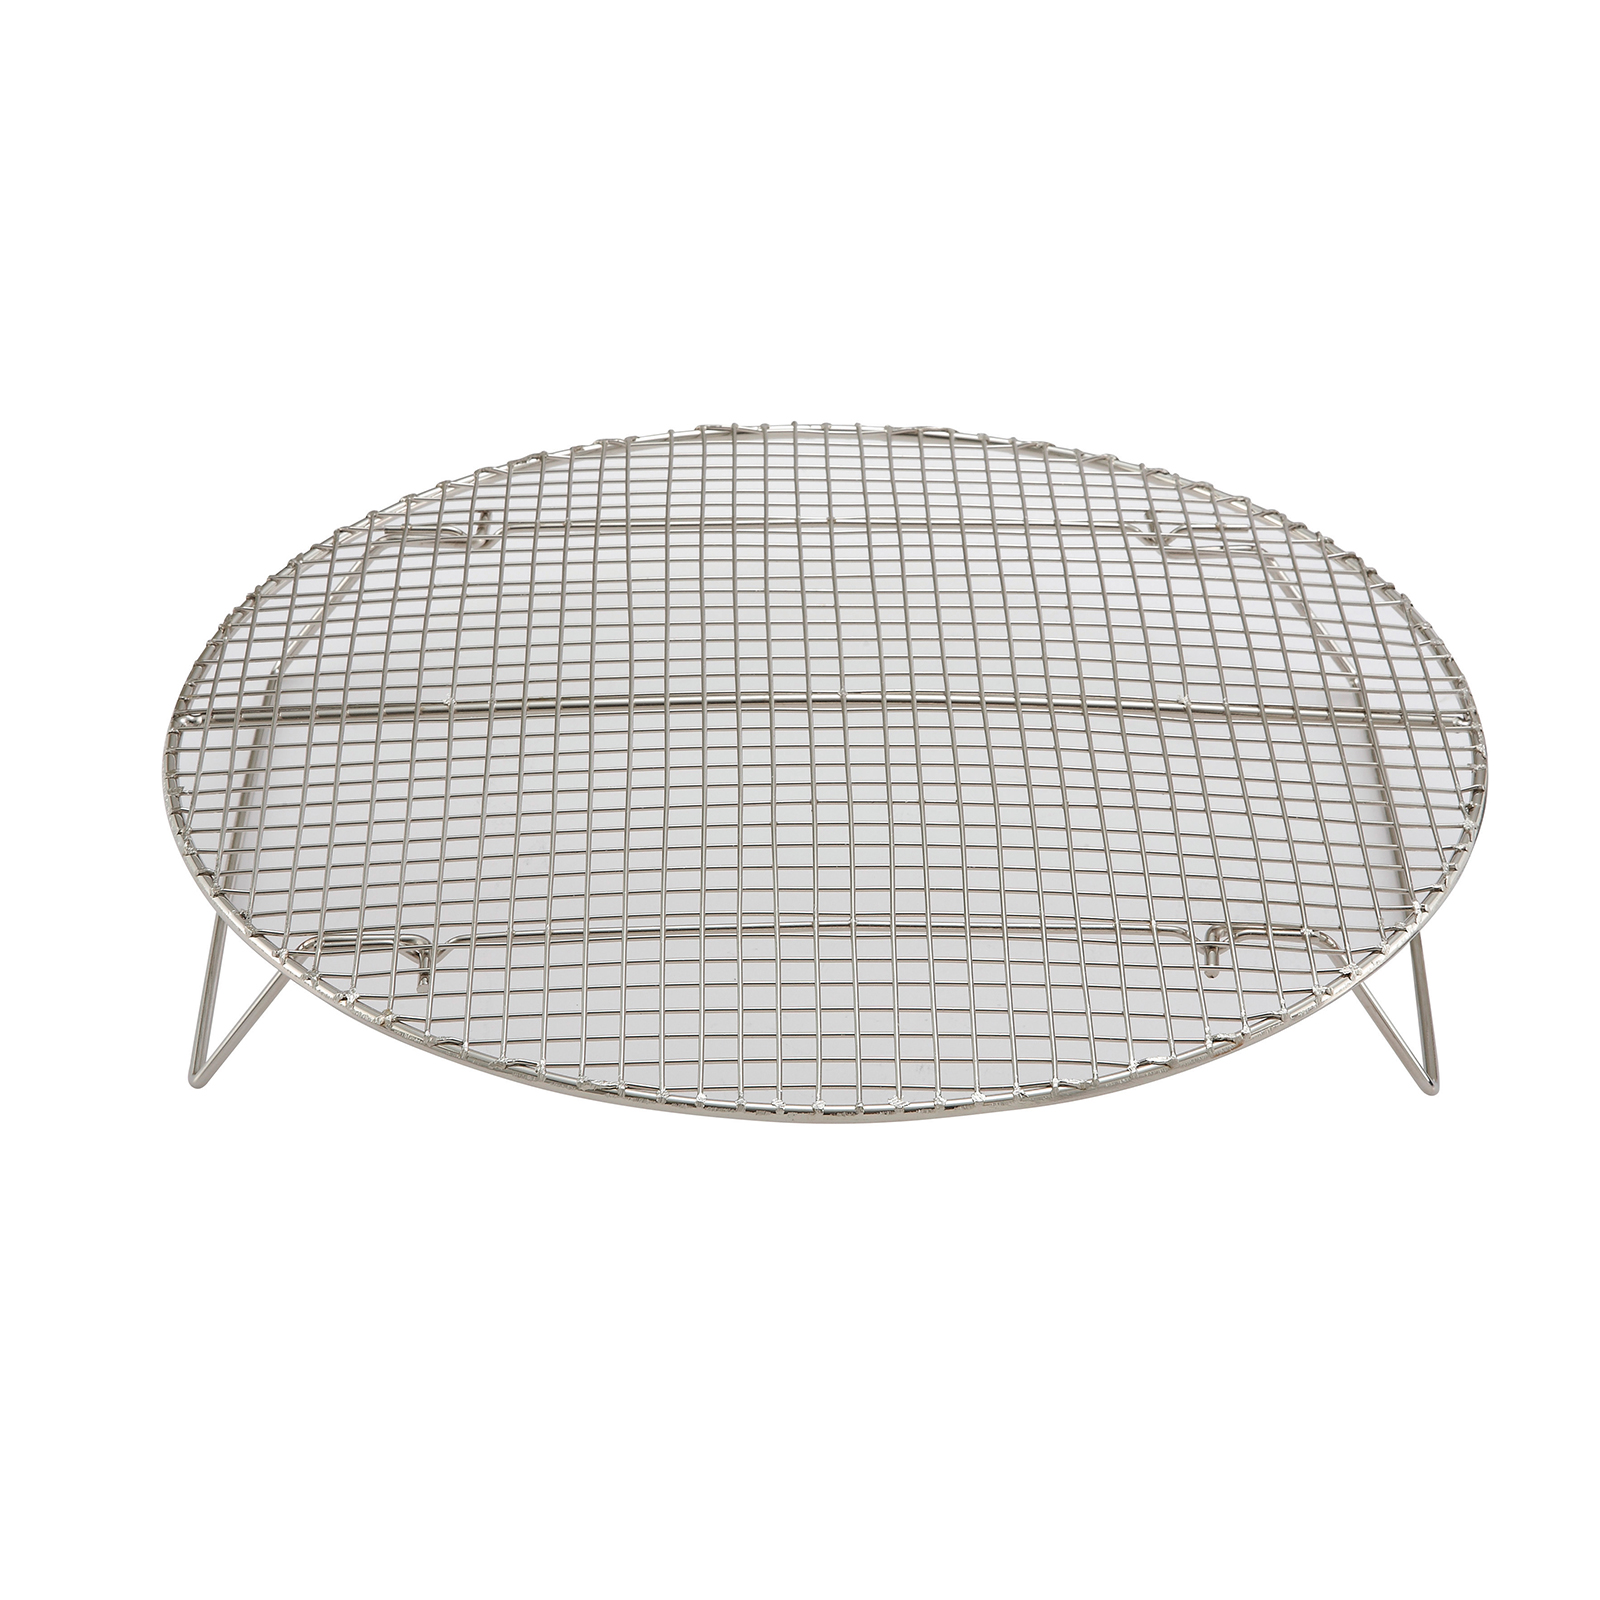 1000-37 Winco STR-18 wire pan rack / grate